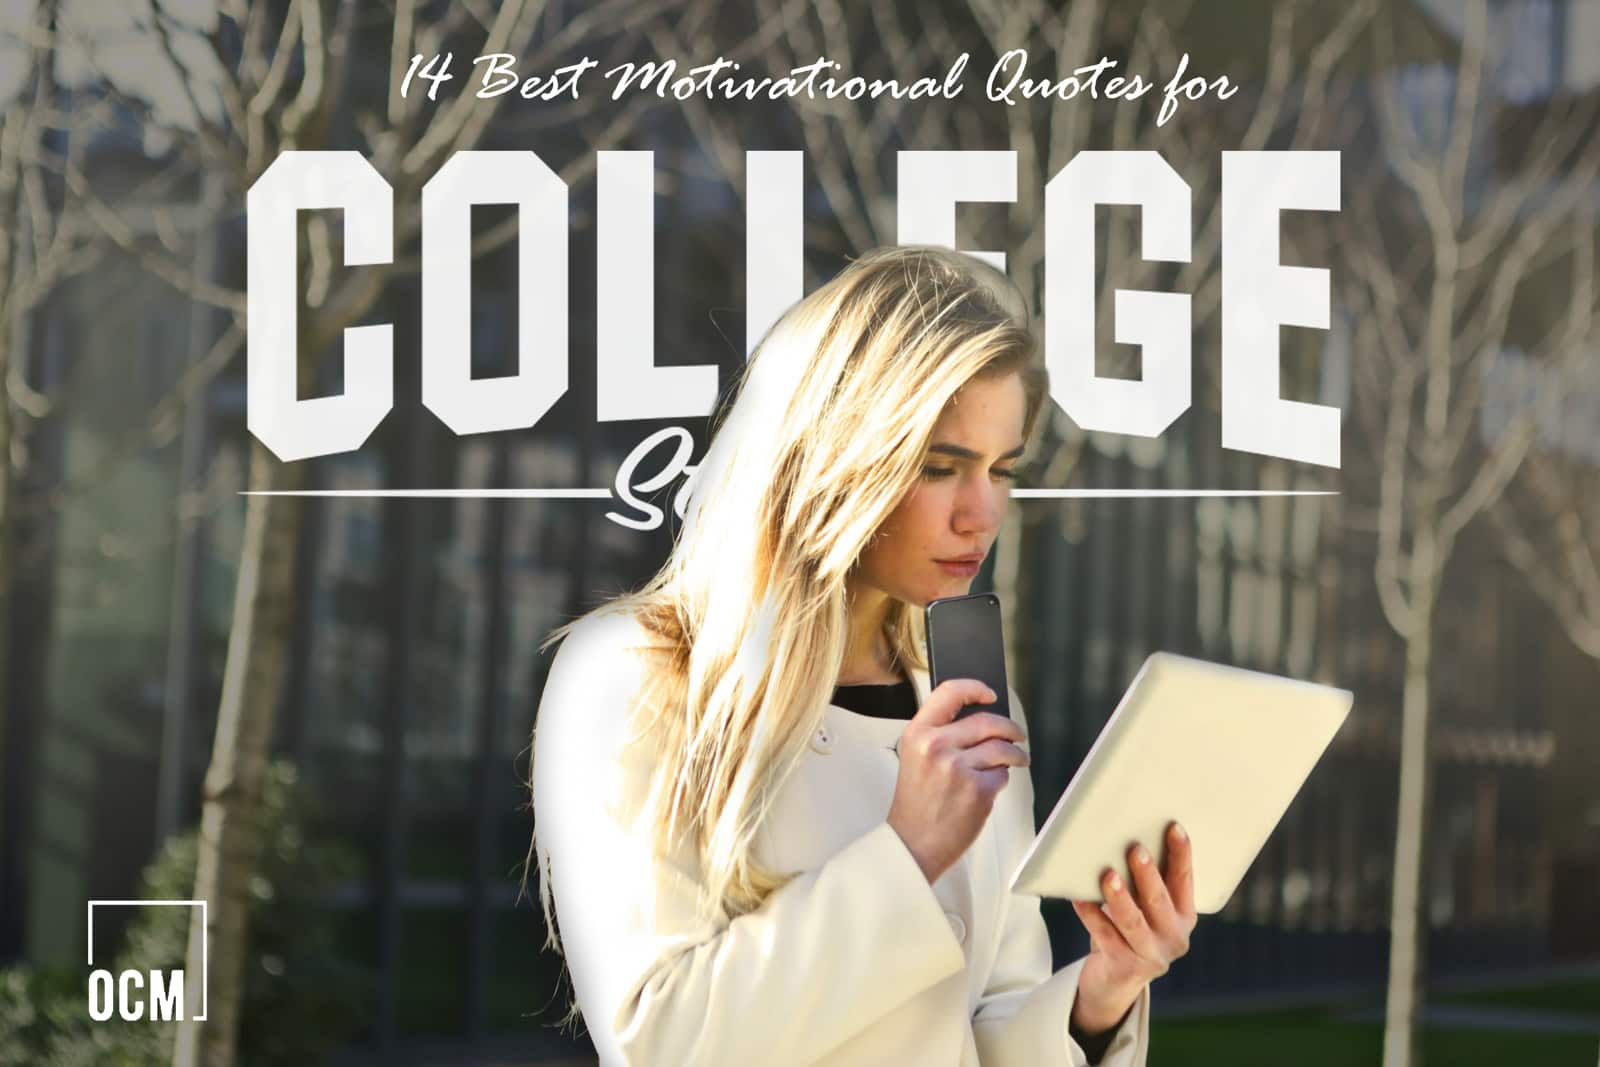 14 Best Motivational Quotes for College students